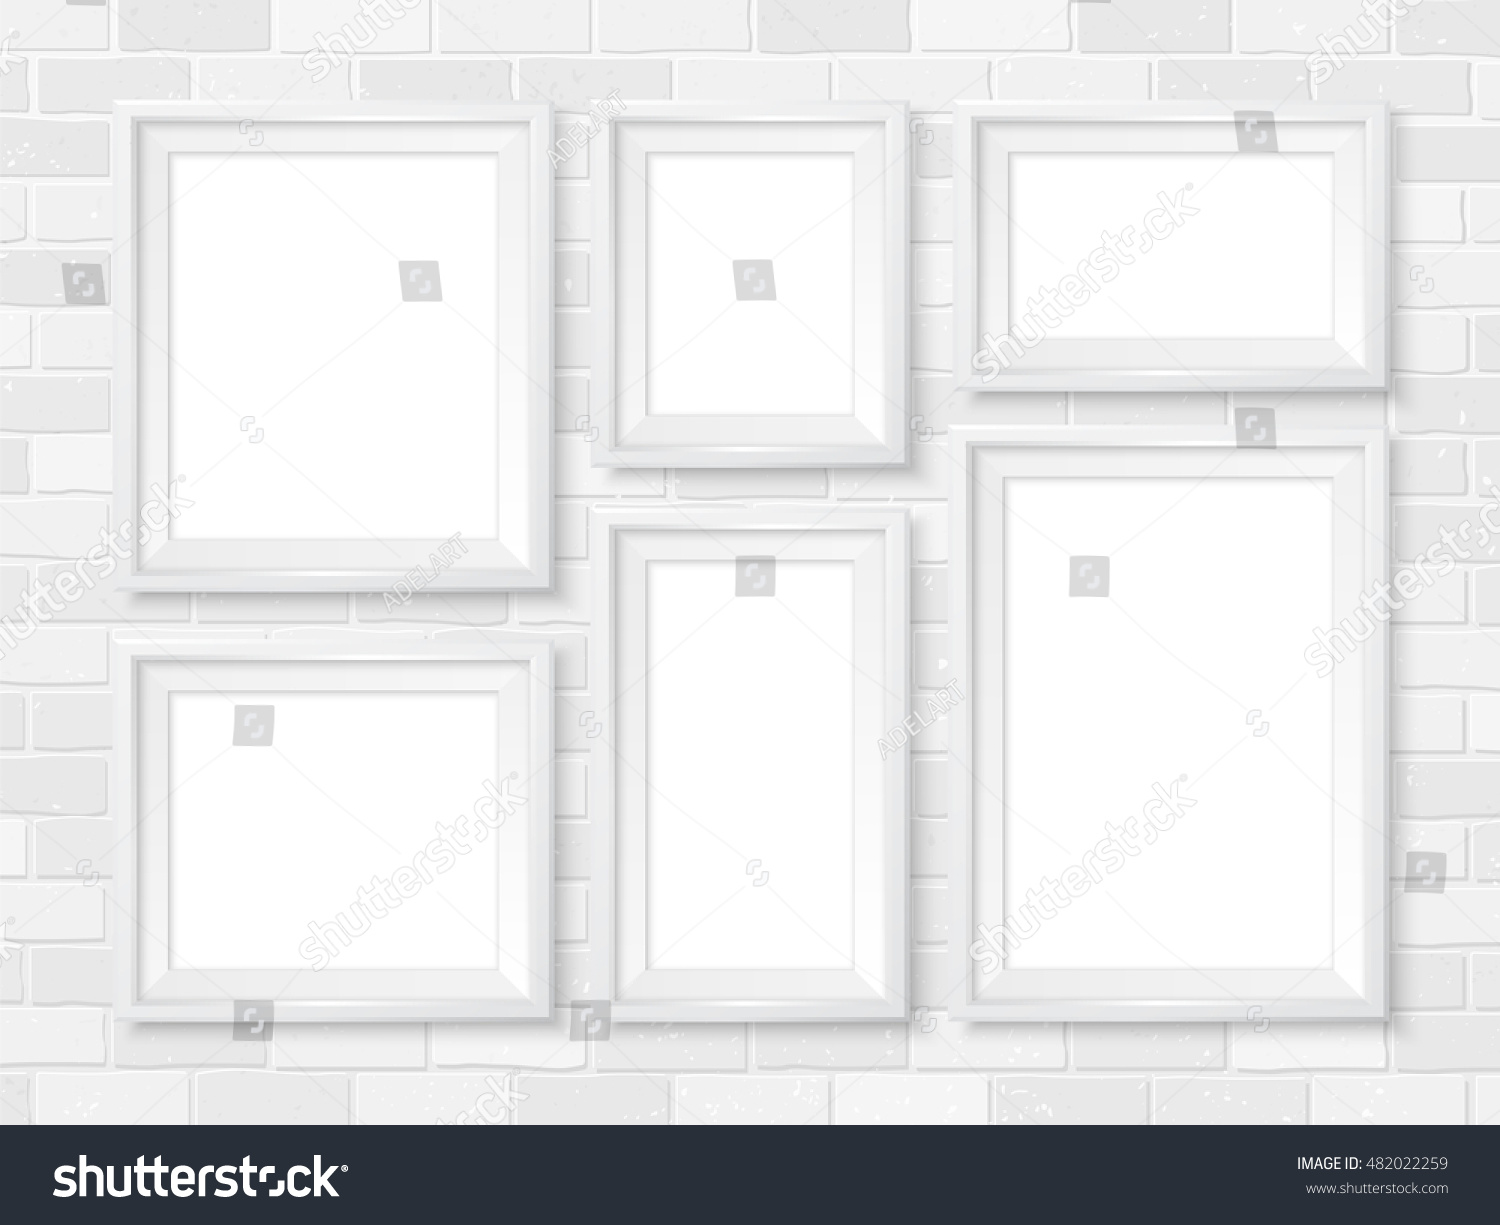 modern white picture frames. Frames Wall Gallery On White Brick Wall. Modern Picture Mock Up. Empty